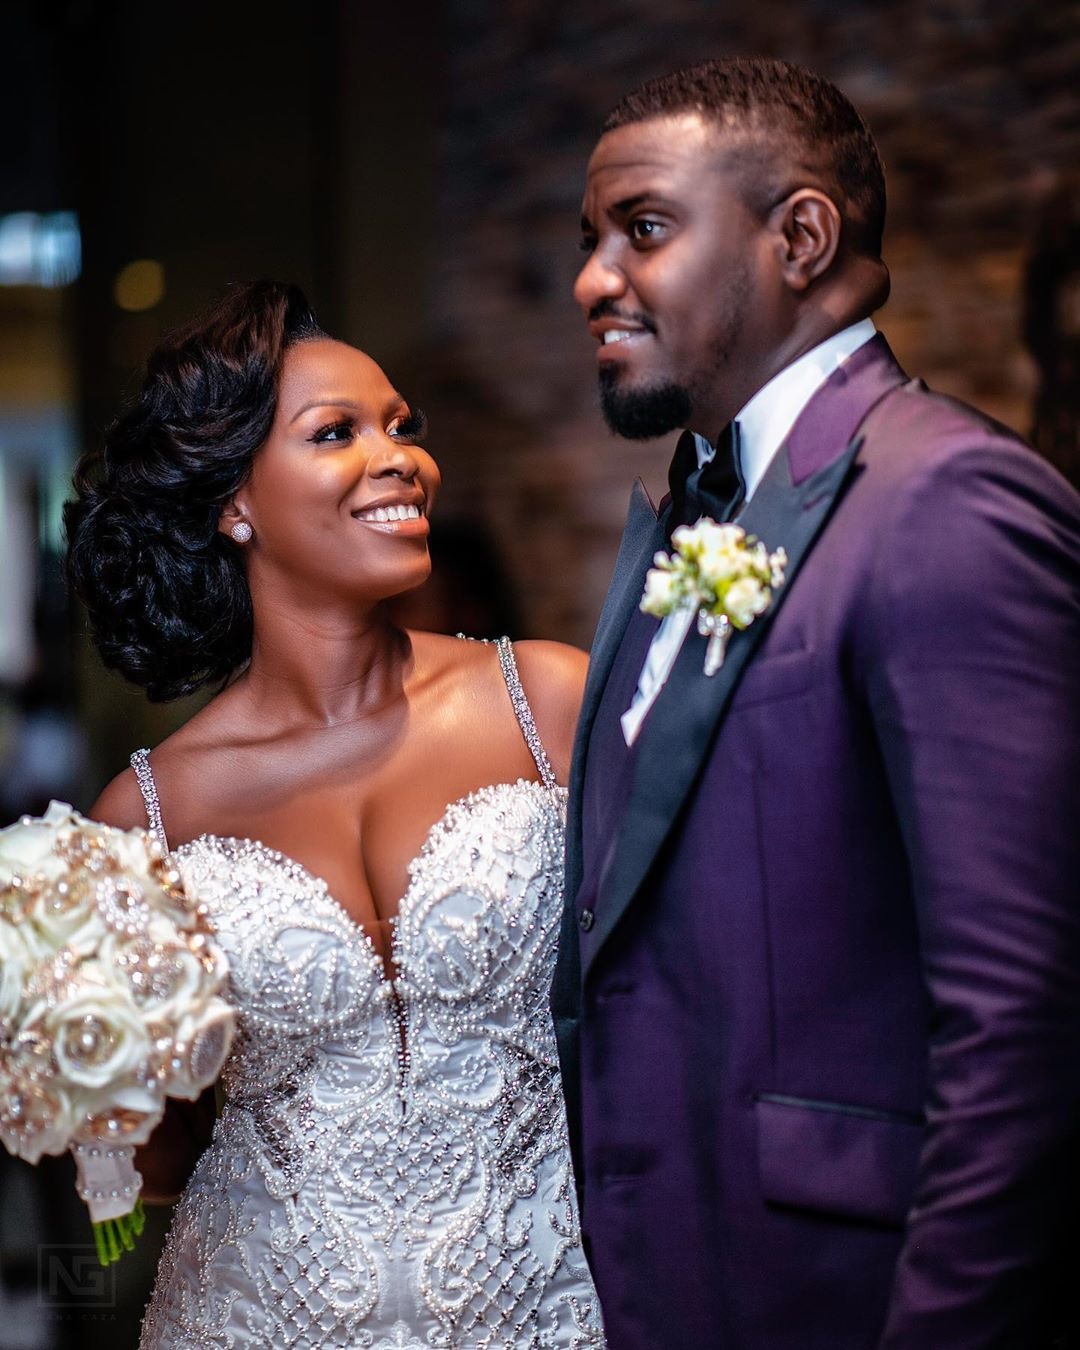 Dumello and wife - Popular actor's bride wears wedding dress worth Ksh 98,000